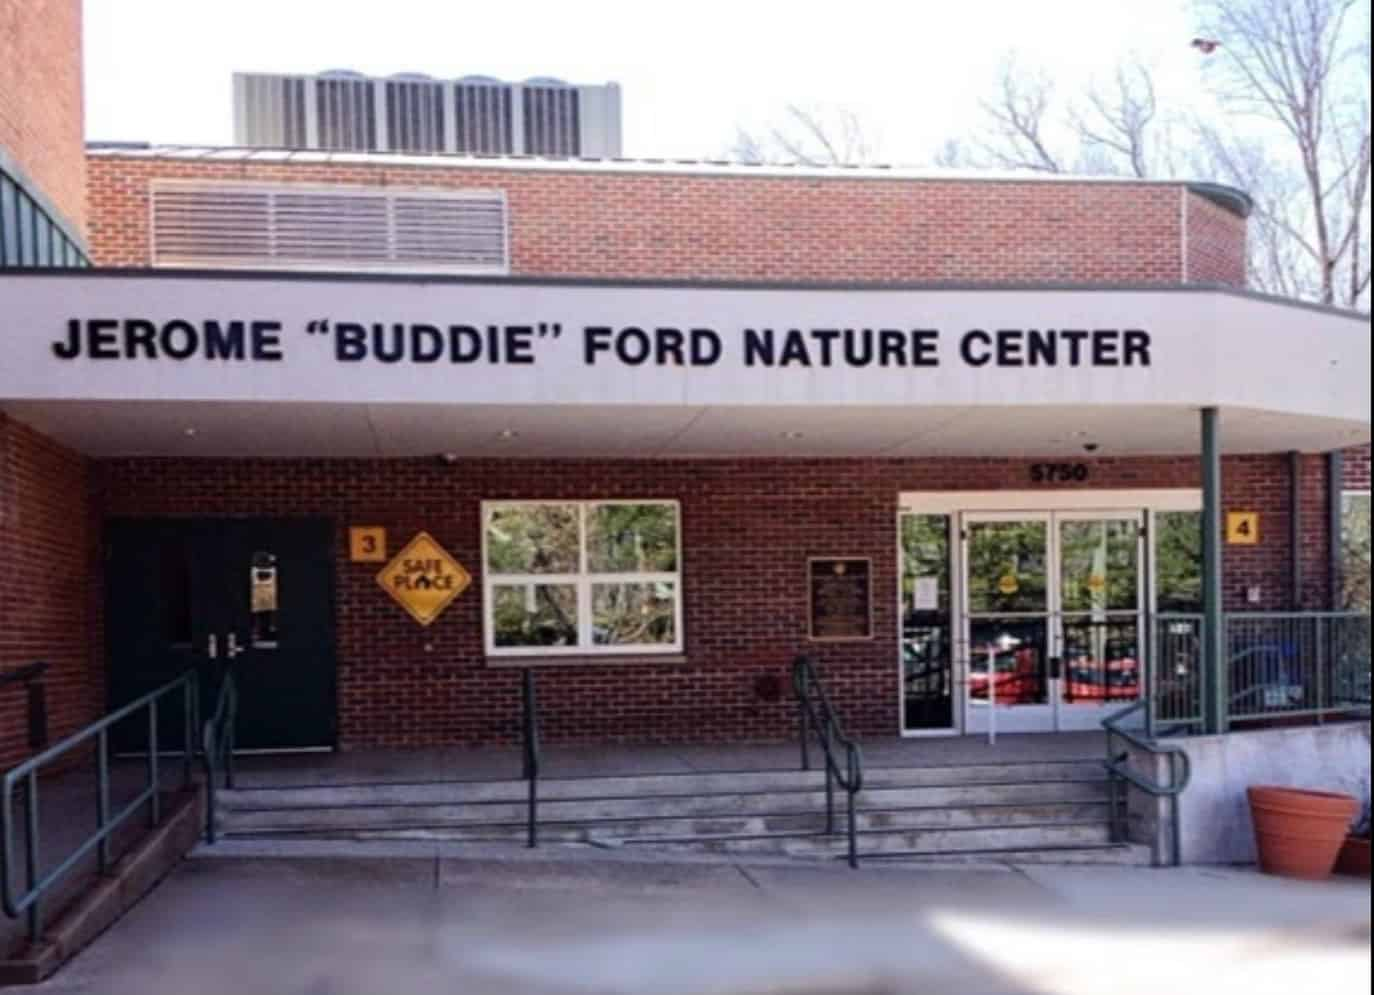 """ICYMI, the Jerome """"Buddie"""" Ford Nature Center in Alexandria, Virginia was featured this morning on WUSA9's 'Great Day Washington'. See the segment here."""